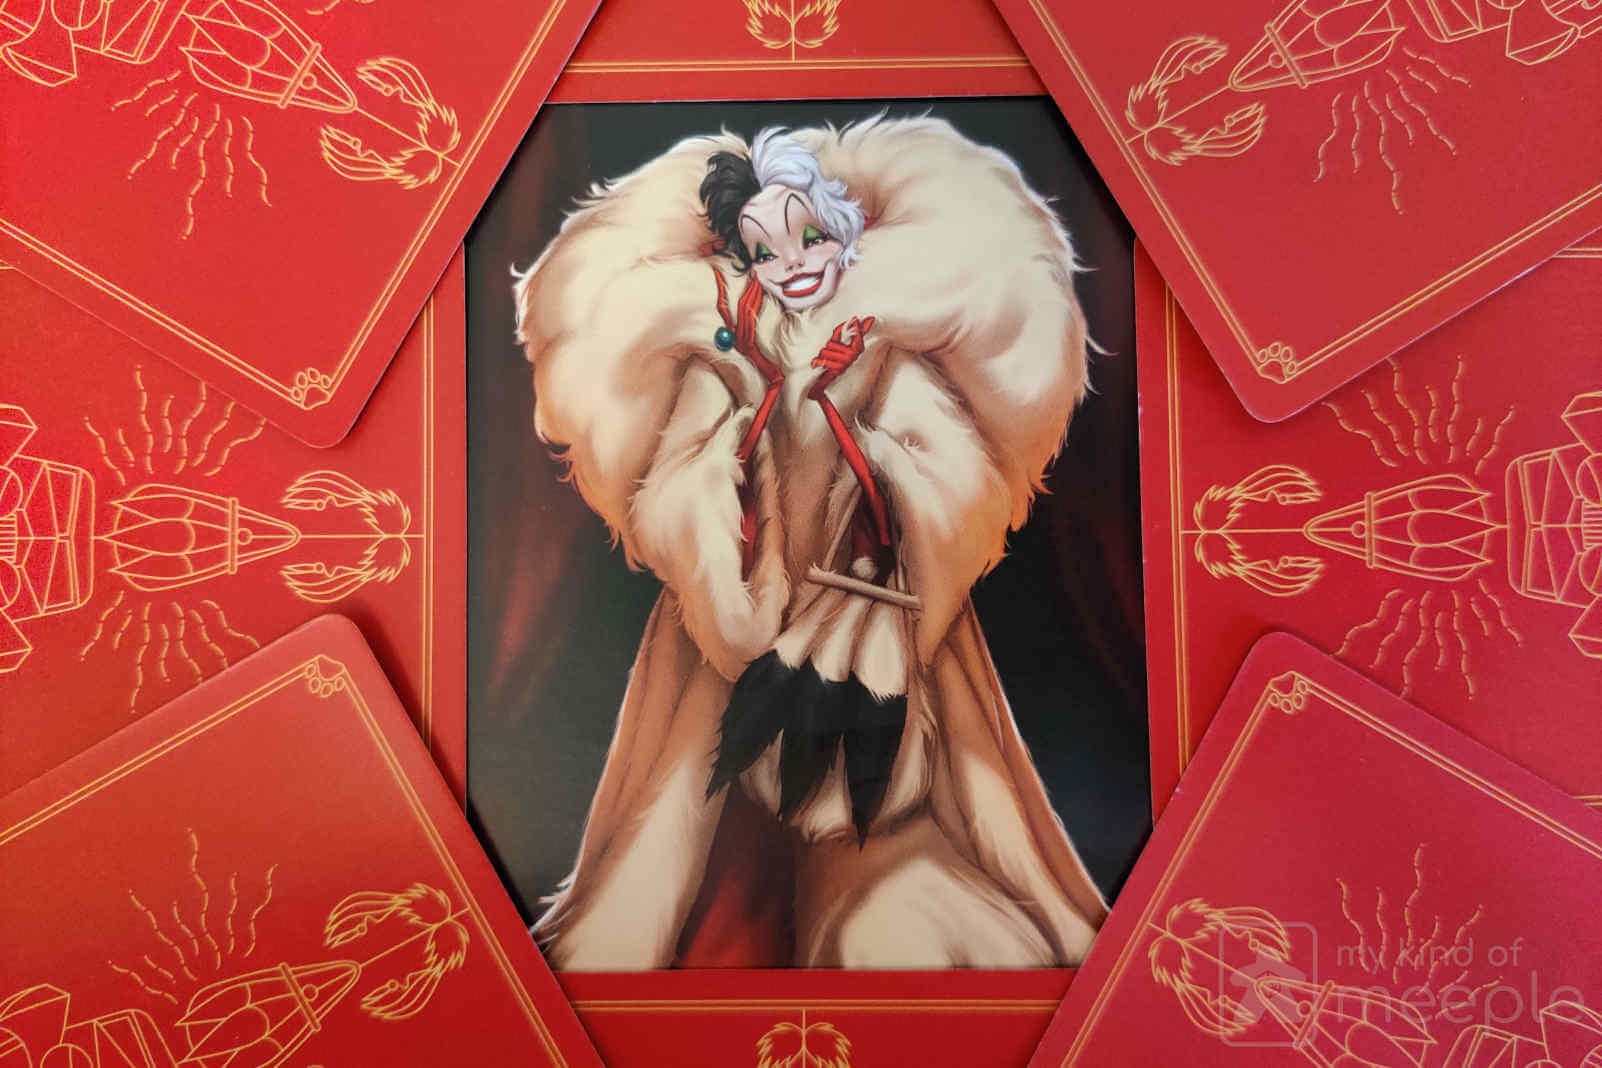 Cruella de vil Disney Villainous and her cards